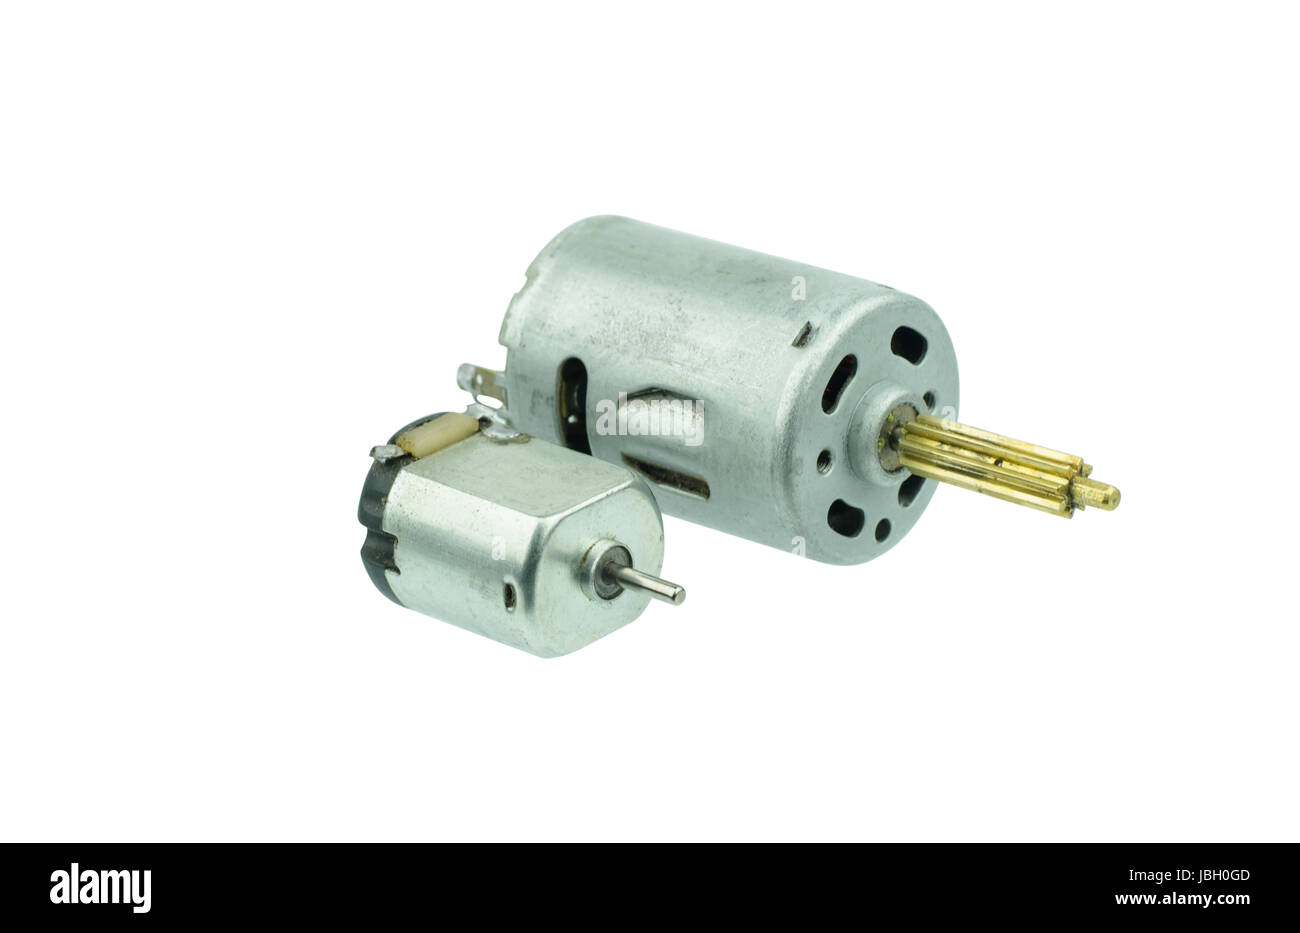 small dc motor gear on isolated white backgroud Stock Photo